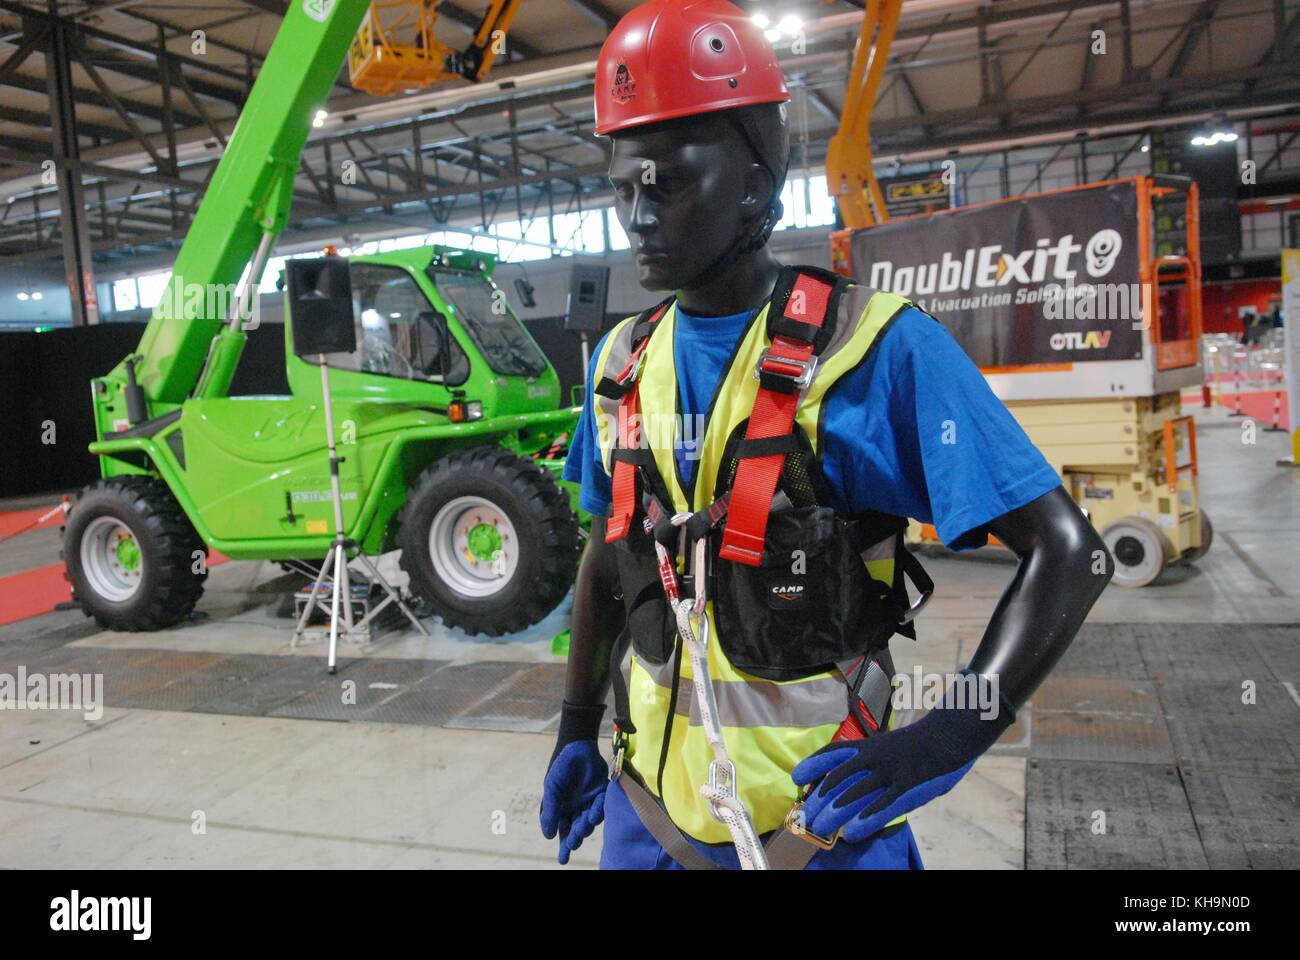 Milan (Italy), fair of security and safety, equipments for safety at work - Stock Image